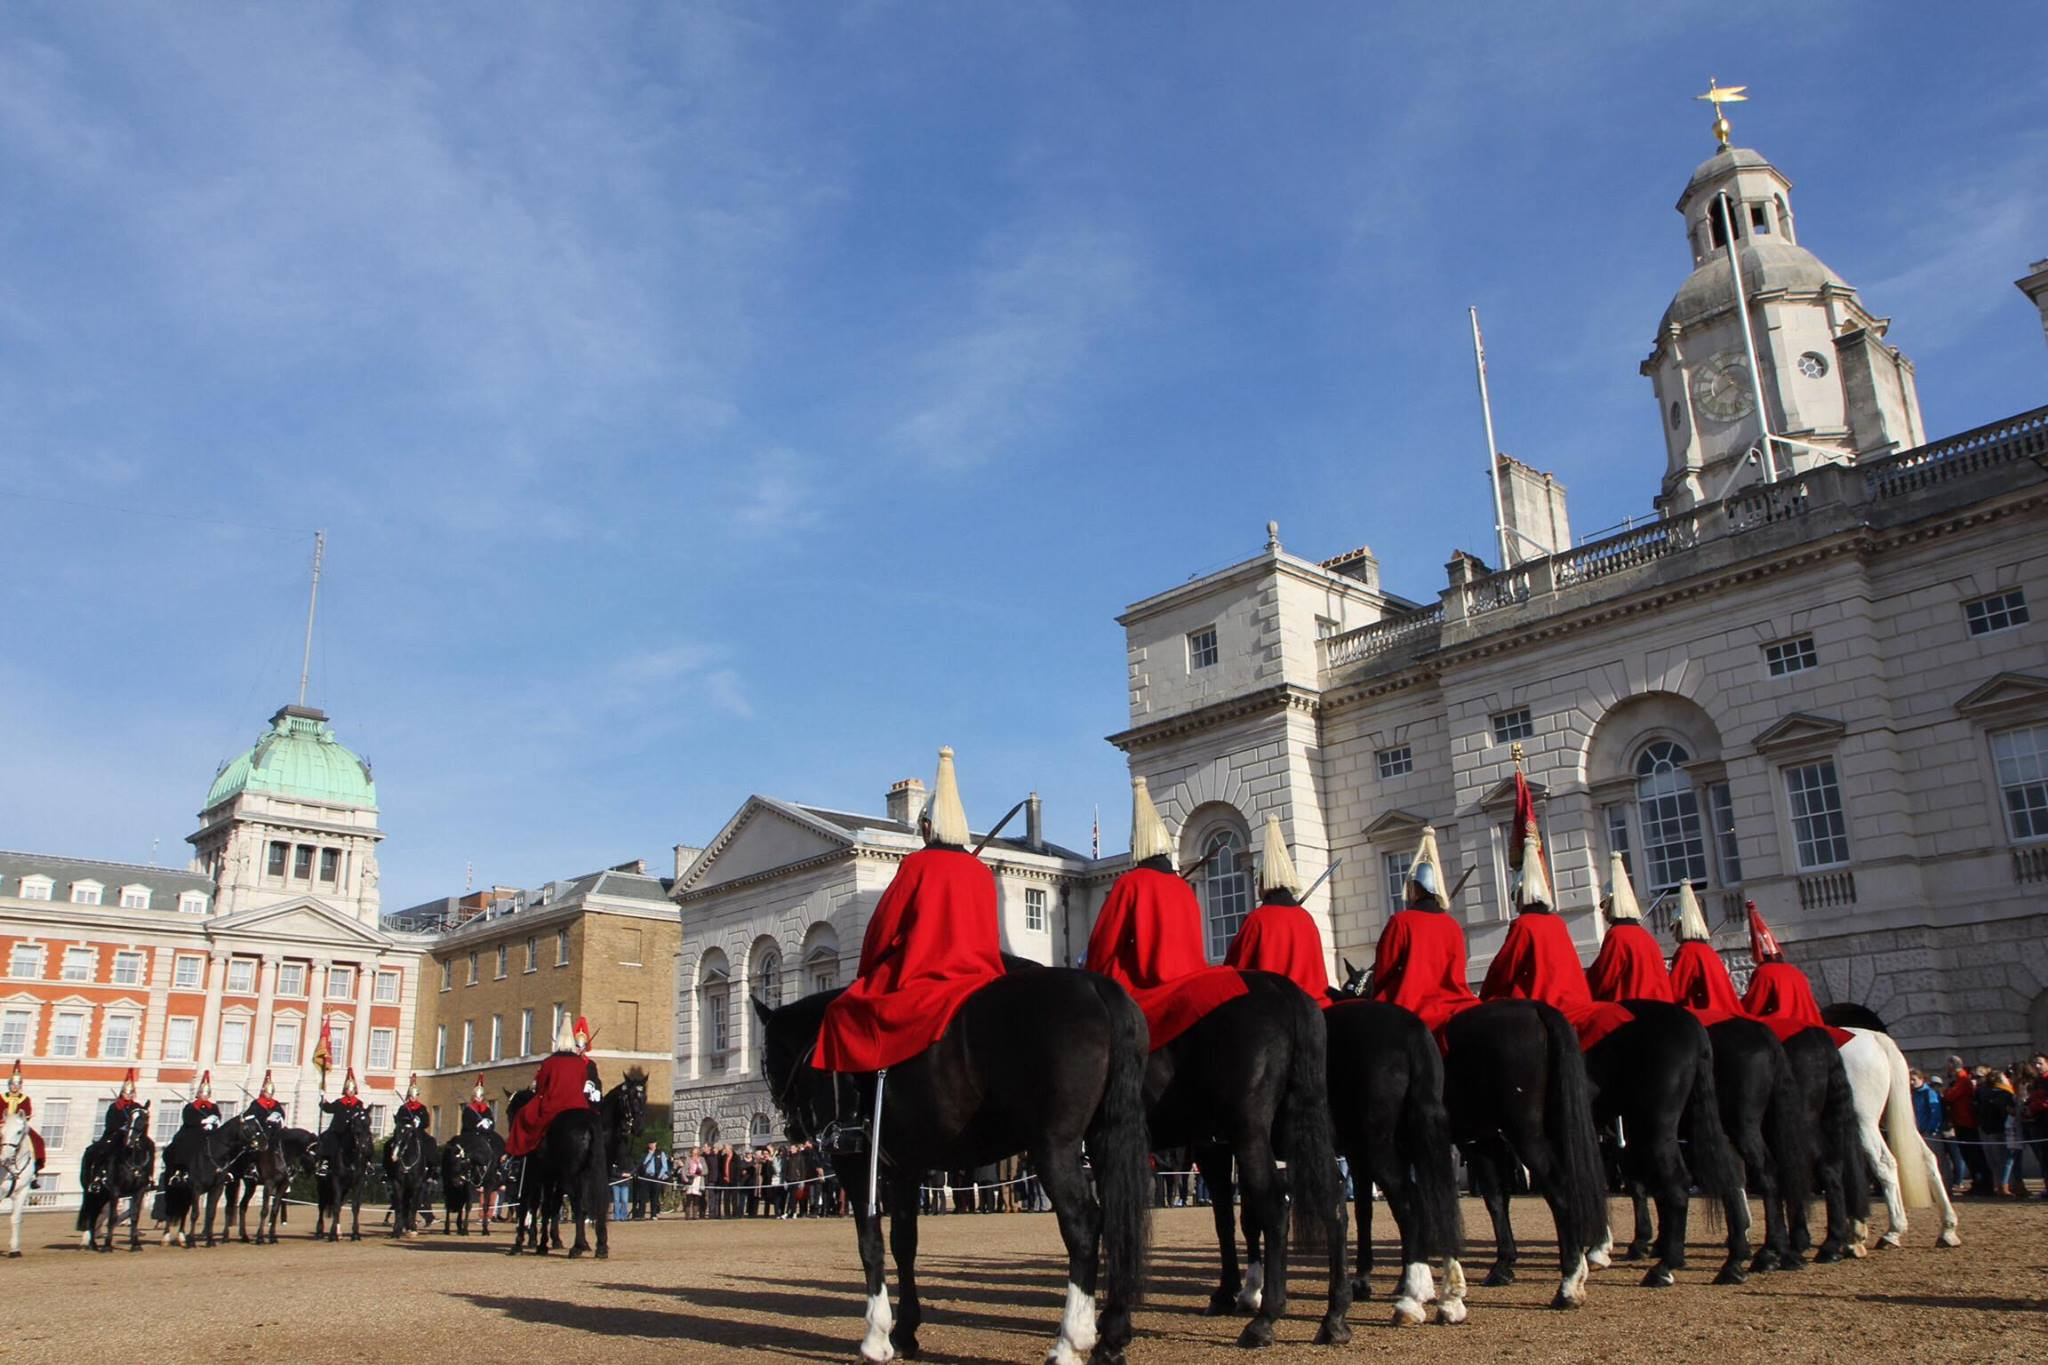 De horse guards parade vlakbij Buckingham Palace